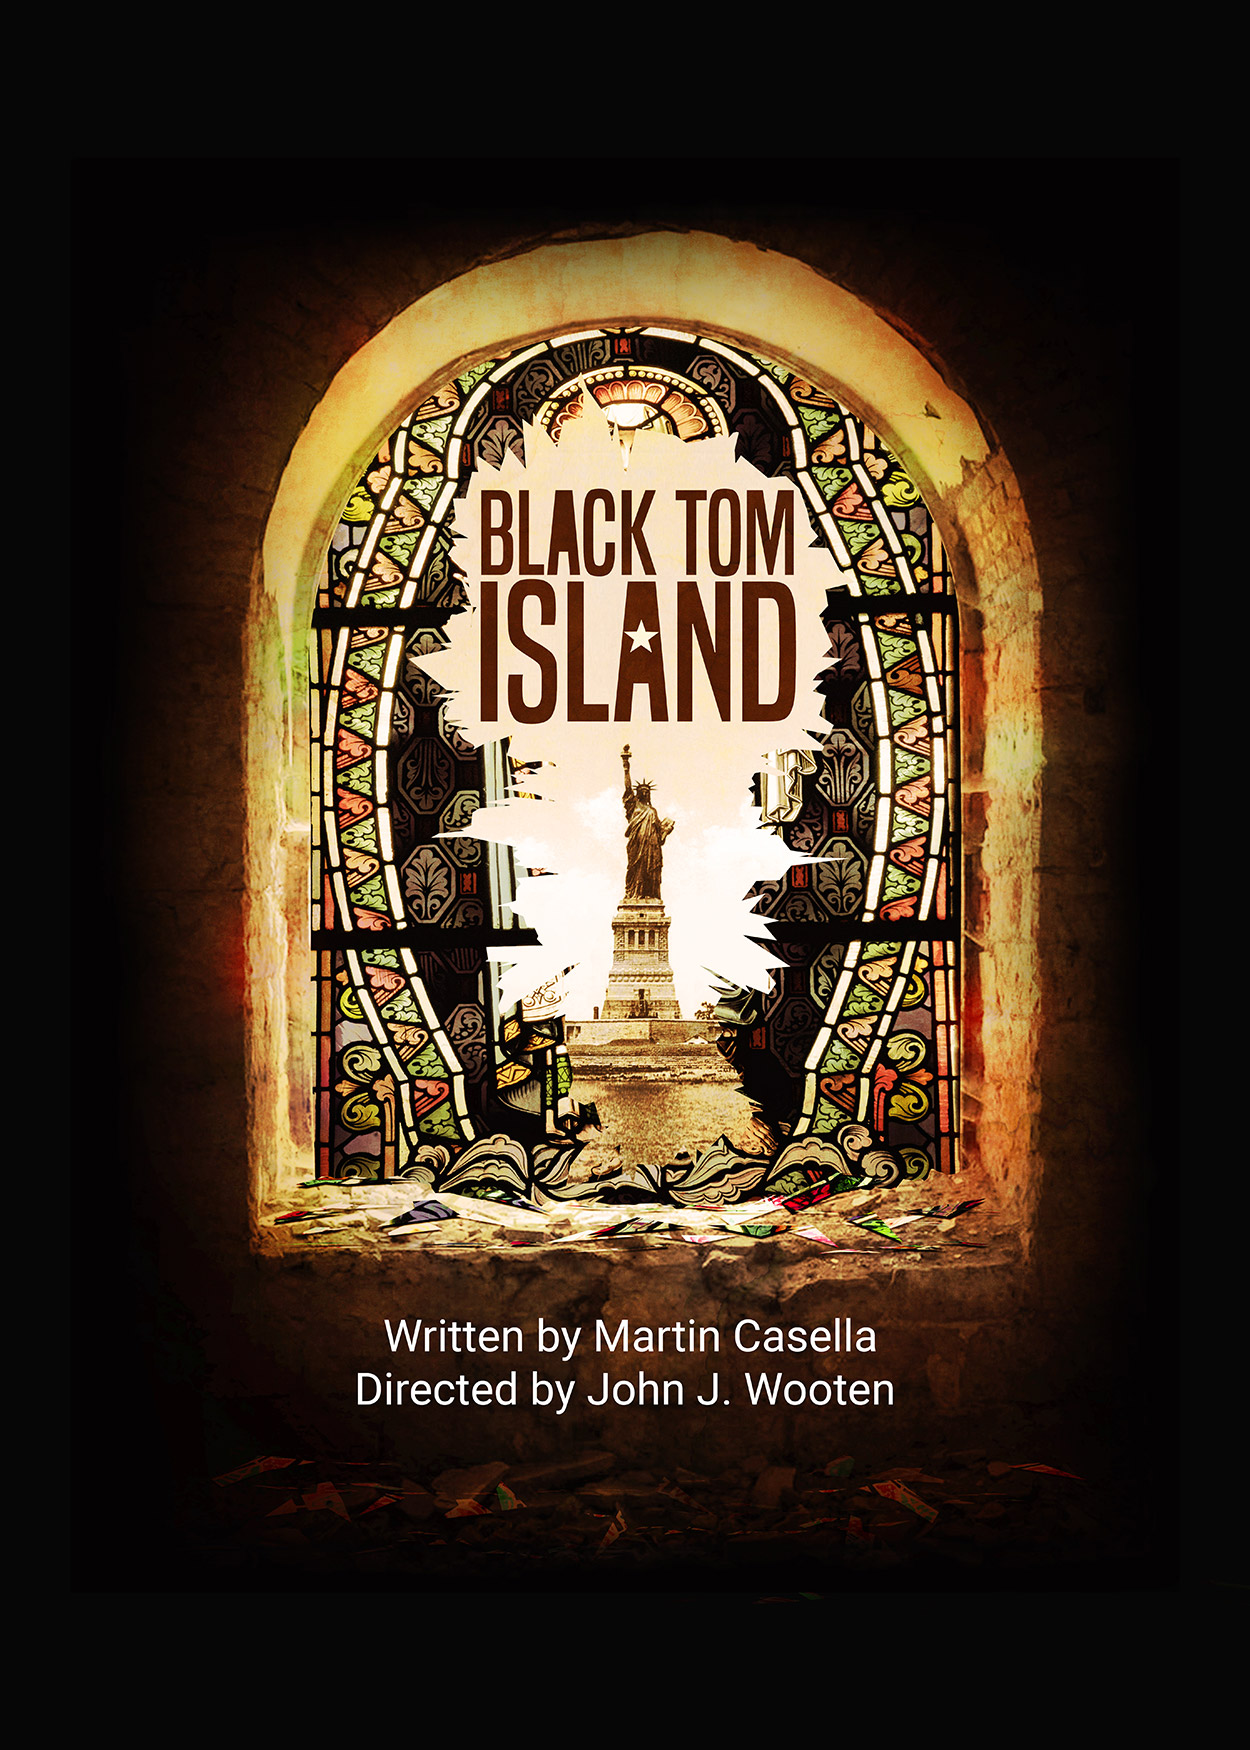 Key Art from Black Tom Island (2018). An image of a shattered stained-glass window. At the center of the image, through the shattered window is the Statue of Liberty.